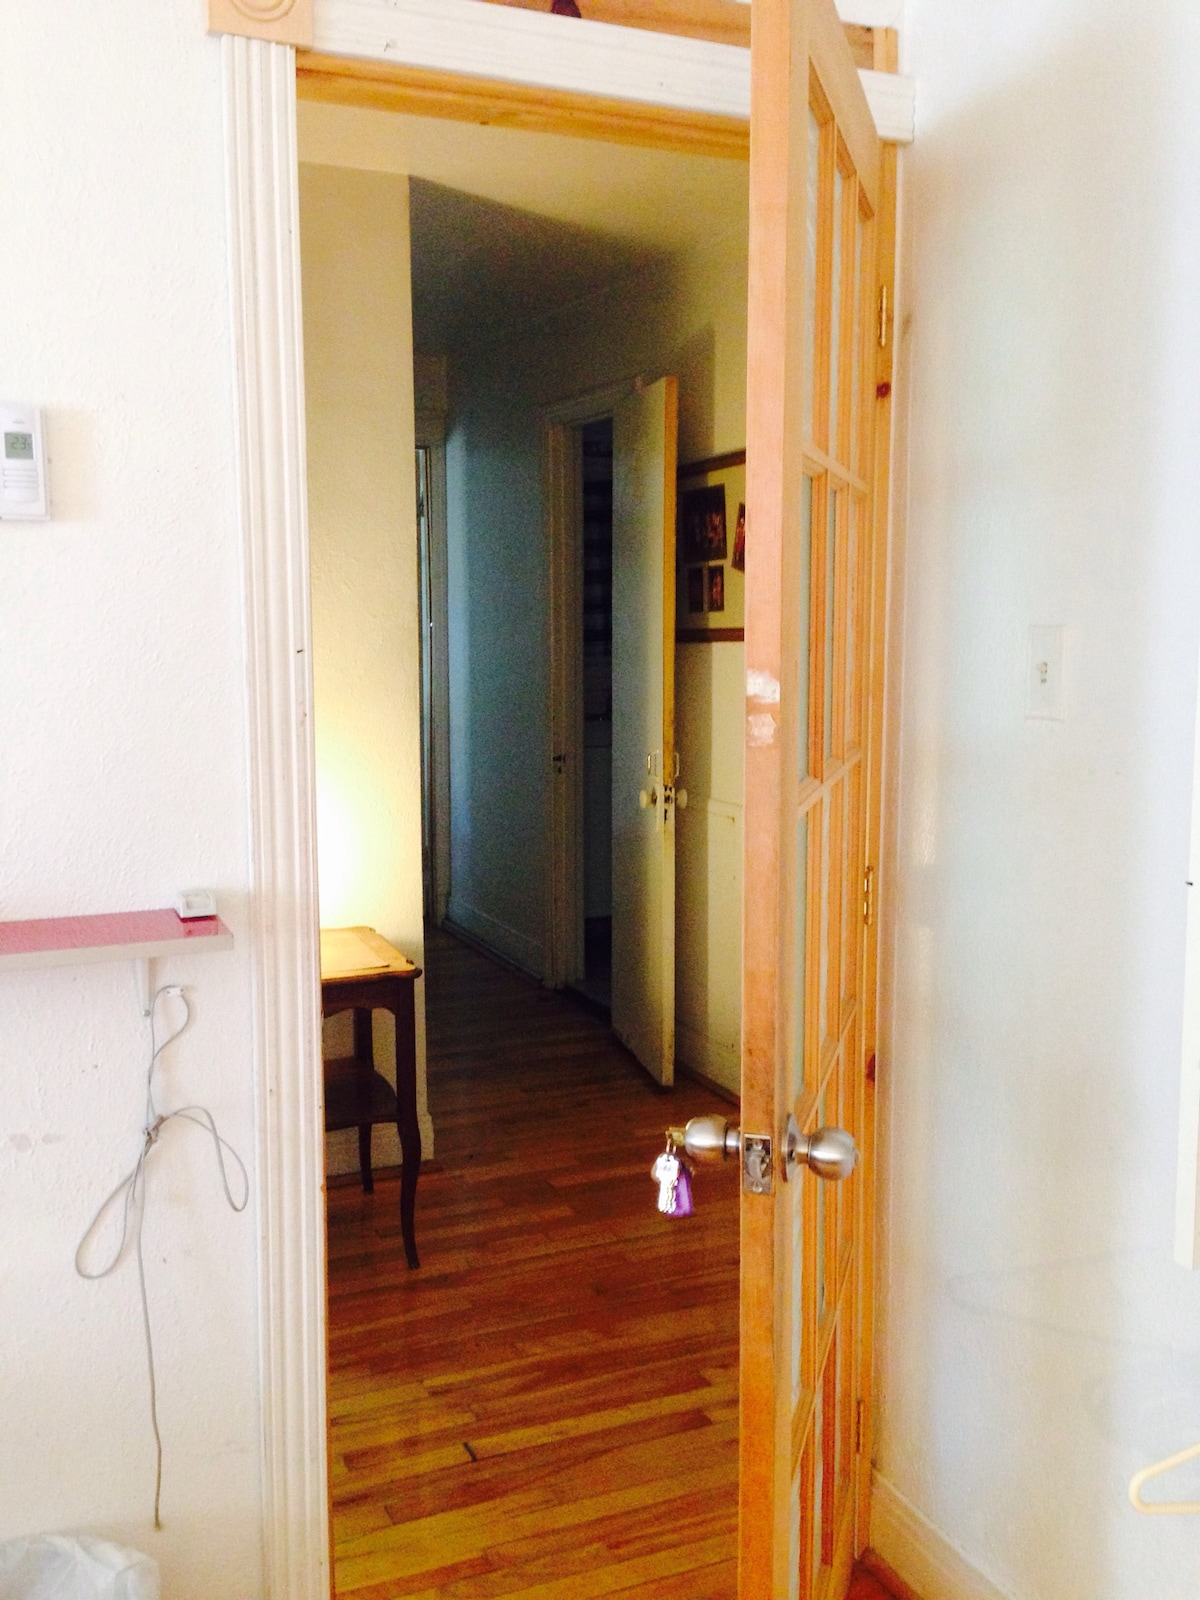 Cote des Neiges Private 2 B/R